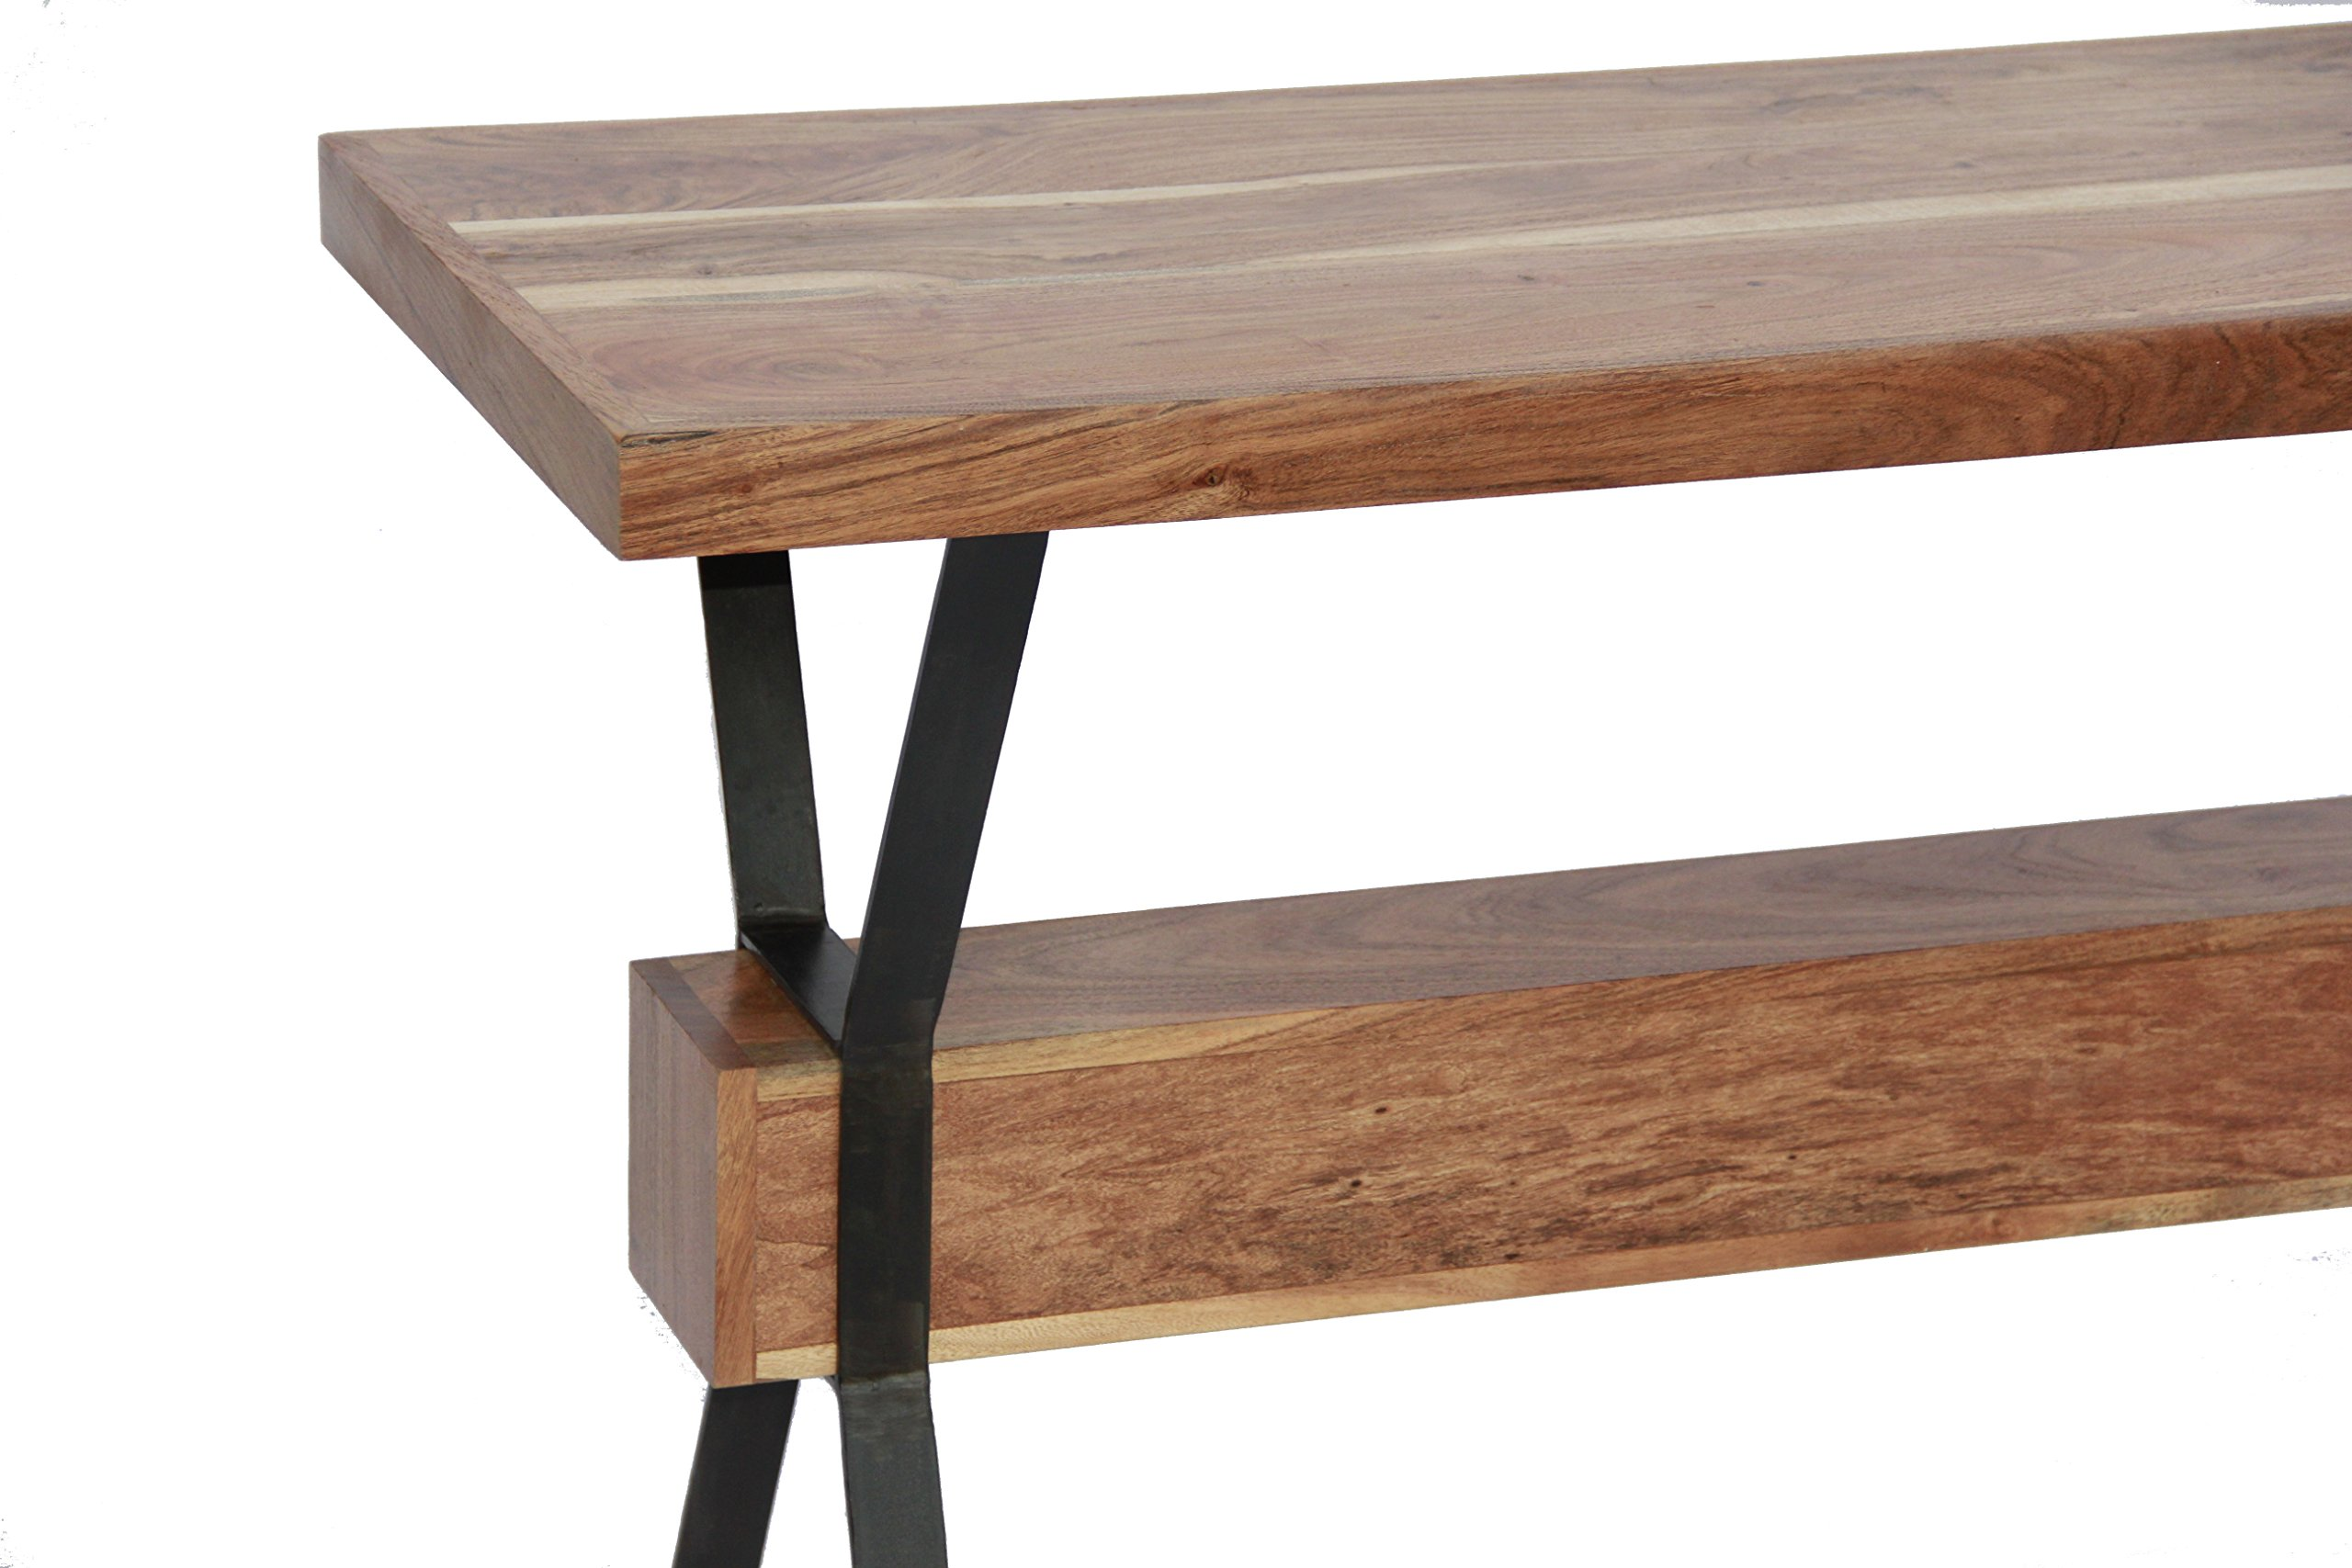 The Urban Port Wooden Top Console Sofa Entry Table, Brown and Black - This table is made up of Acacia nilotica wood and has a strong metal base that adds years to its life. This table gives you a lot of space for displaying vases, framed pictures or other decorative pieces. This table has a weight capacity of 130 pounds. - living-room-furniture, living-room, console-tables - 819Hc0mttrL -